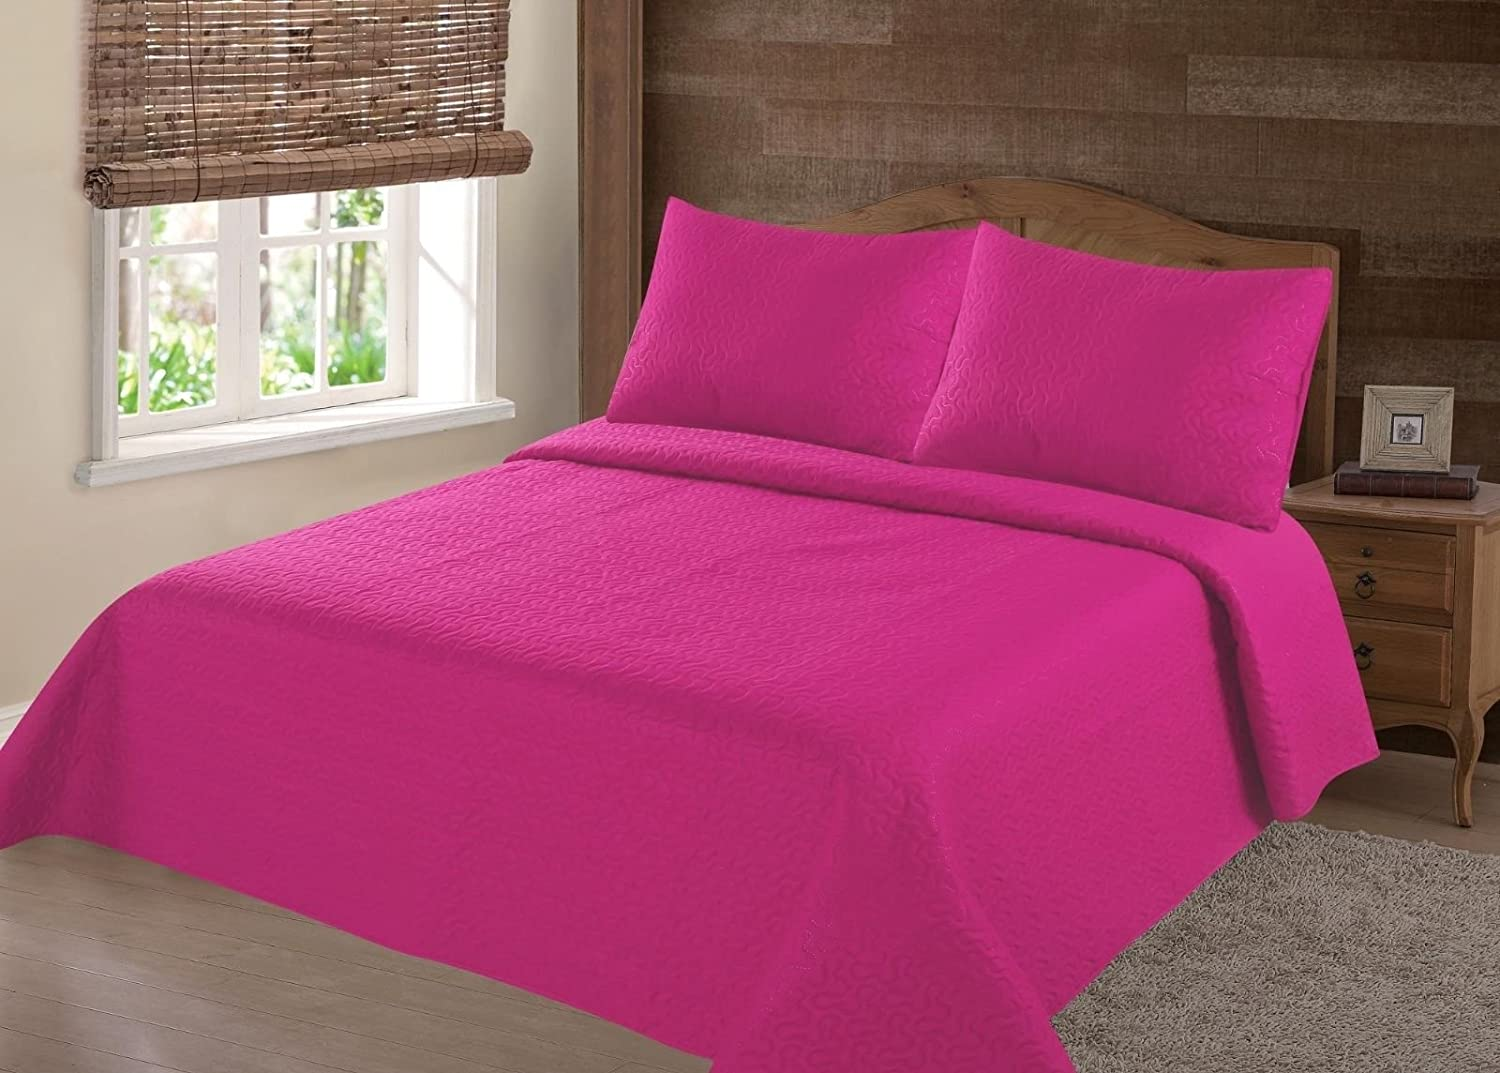 GorgeousHomeLinen (NENA) 2/3-Piece Hot Pink Solid Hypoallergenic Quilt Bedspread Bed Bedding Coverlets Cover Set with Pillow Cases (Queen)